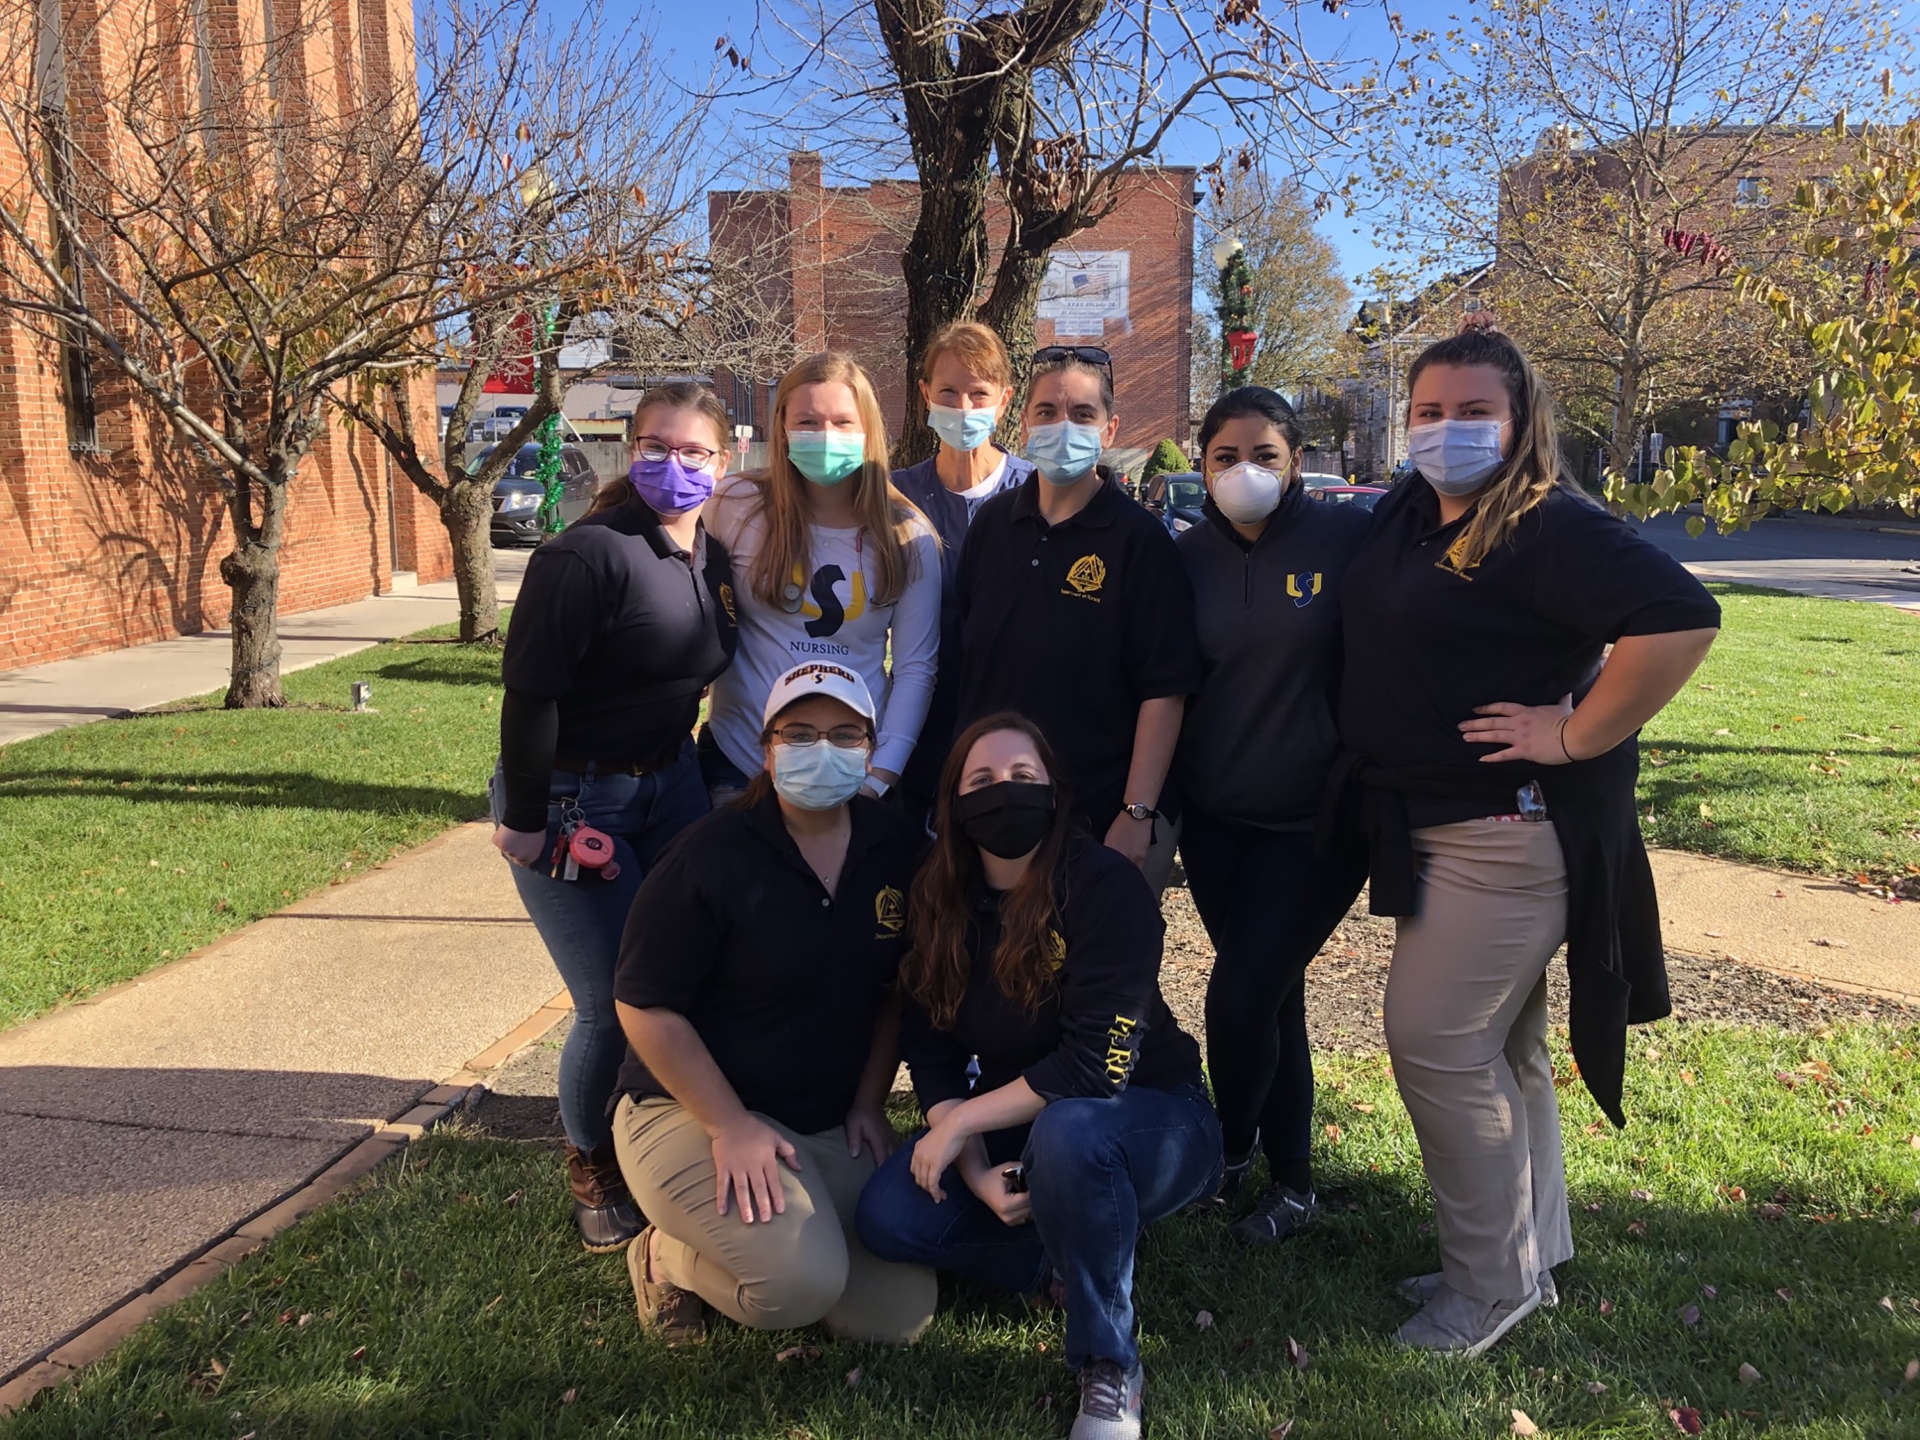 "Pictured (kneeling, l. to r.) are nursing majors Megan Suittmiller, Hebron, Maryland, and Moriah King, Cumberland, Maryland; standing, Makailee Wood, Martinsburg, Chelsey Black, St. Thomas, Pennsylvania, Dr. Lisa Zerull, assistant professor of nursing, Shena Morris, Martinsburg, Maria ""MJ"" Acevedo-Cabrera, Shepherdstown, and Bethany Larrimore, Inwood."